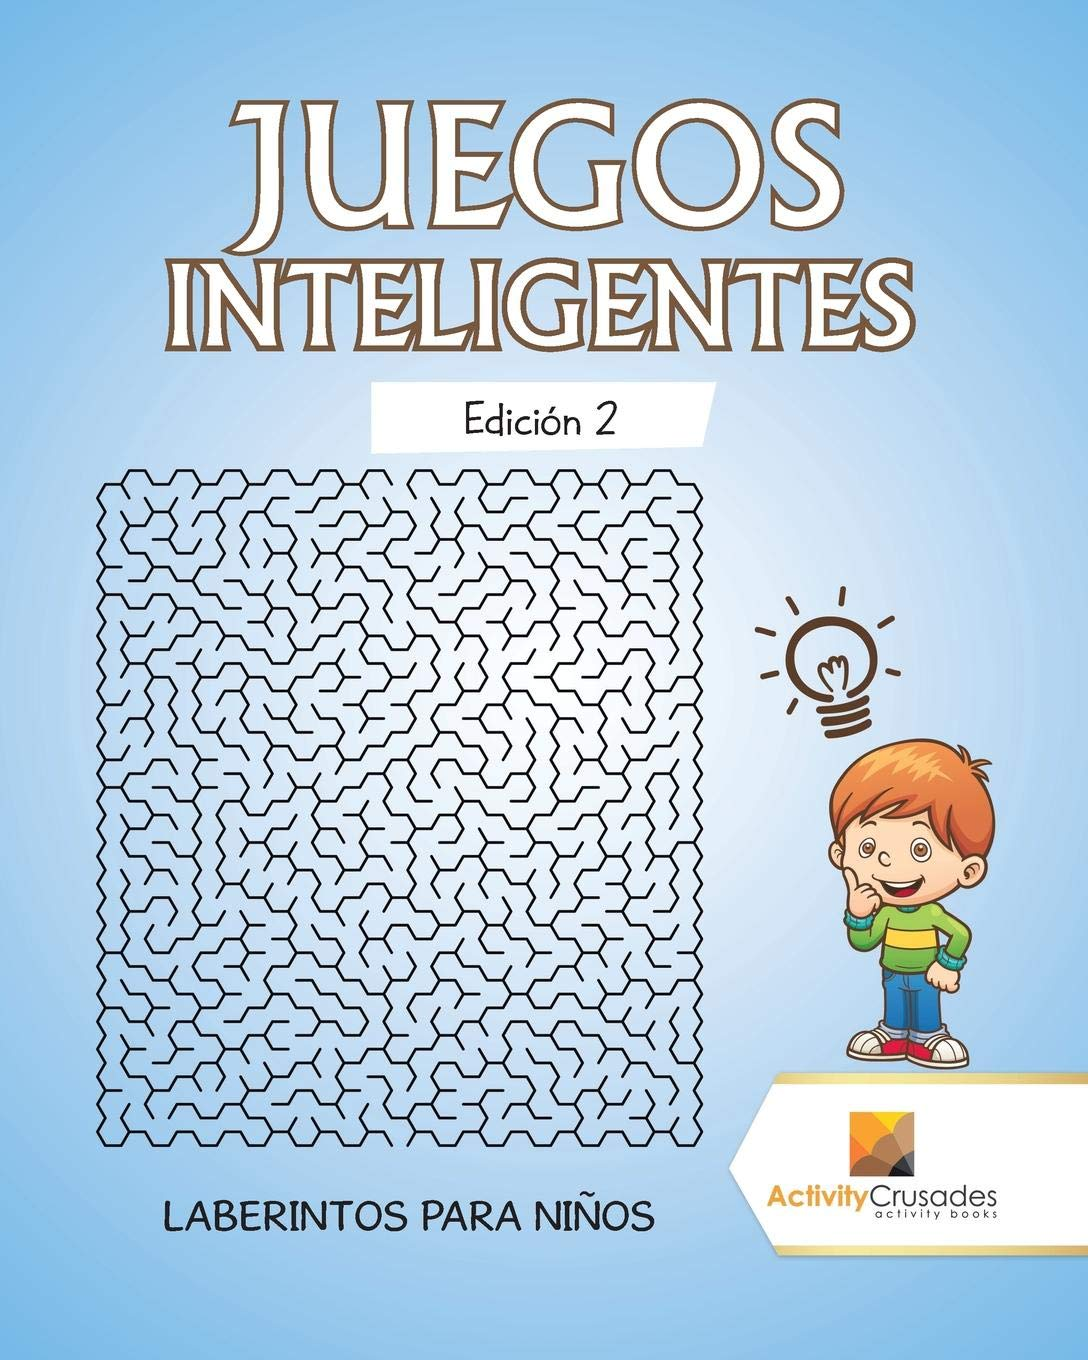 Juegos Inteligentes Edición 2 : Laberintos Para Niños (Spanish Edition): Activity Crusades: 9780228218180: Amazon.com: Books